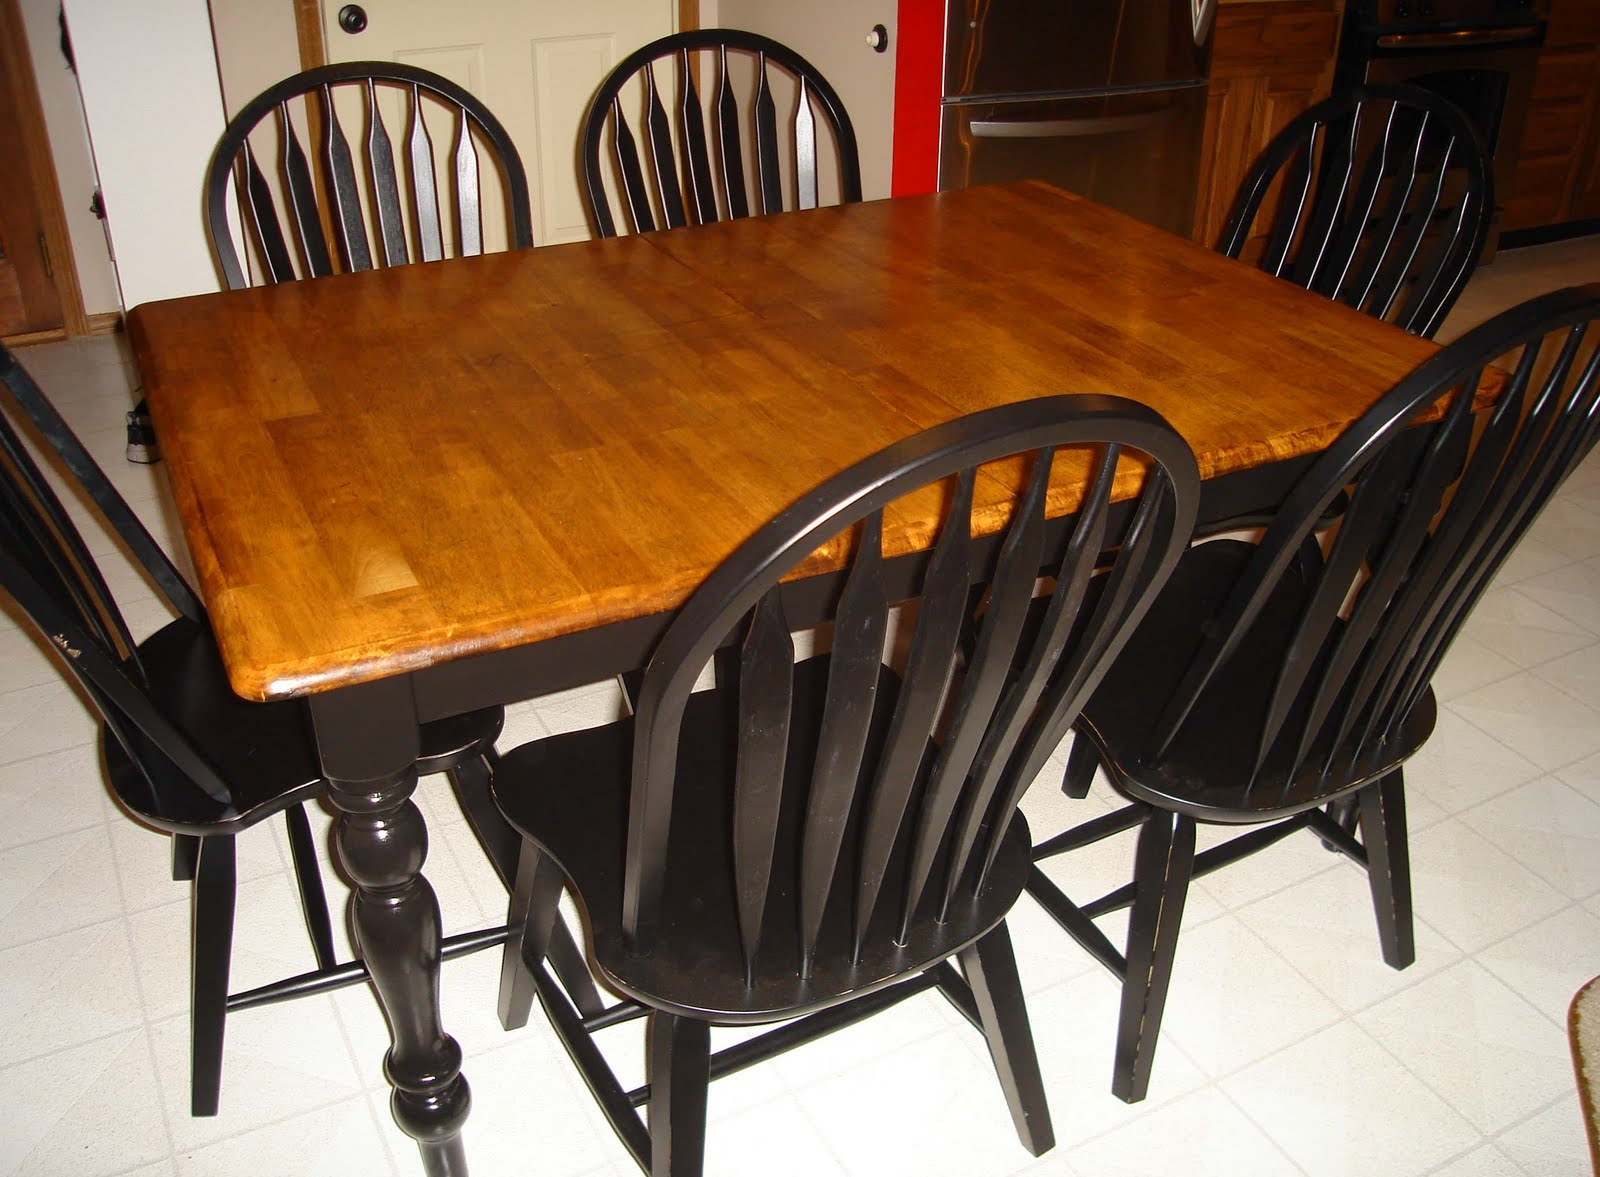 Better together refinishing a kitchen table part 2 - Refinishing a kitchen table ...